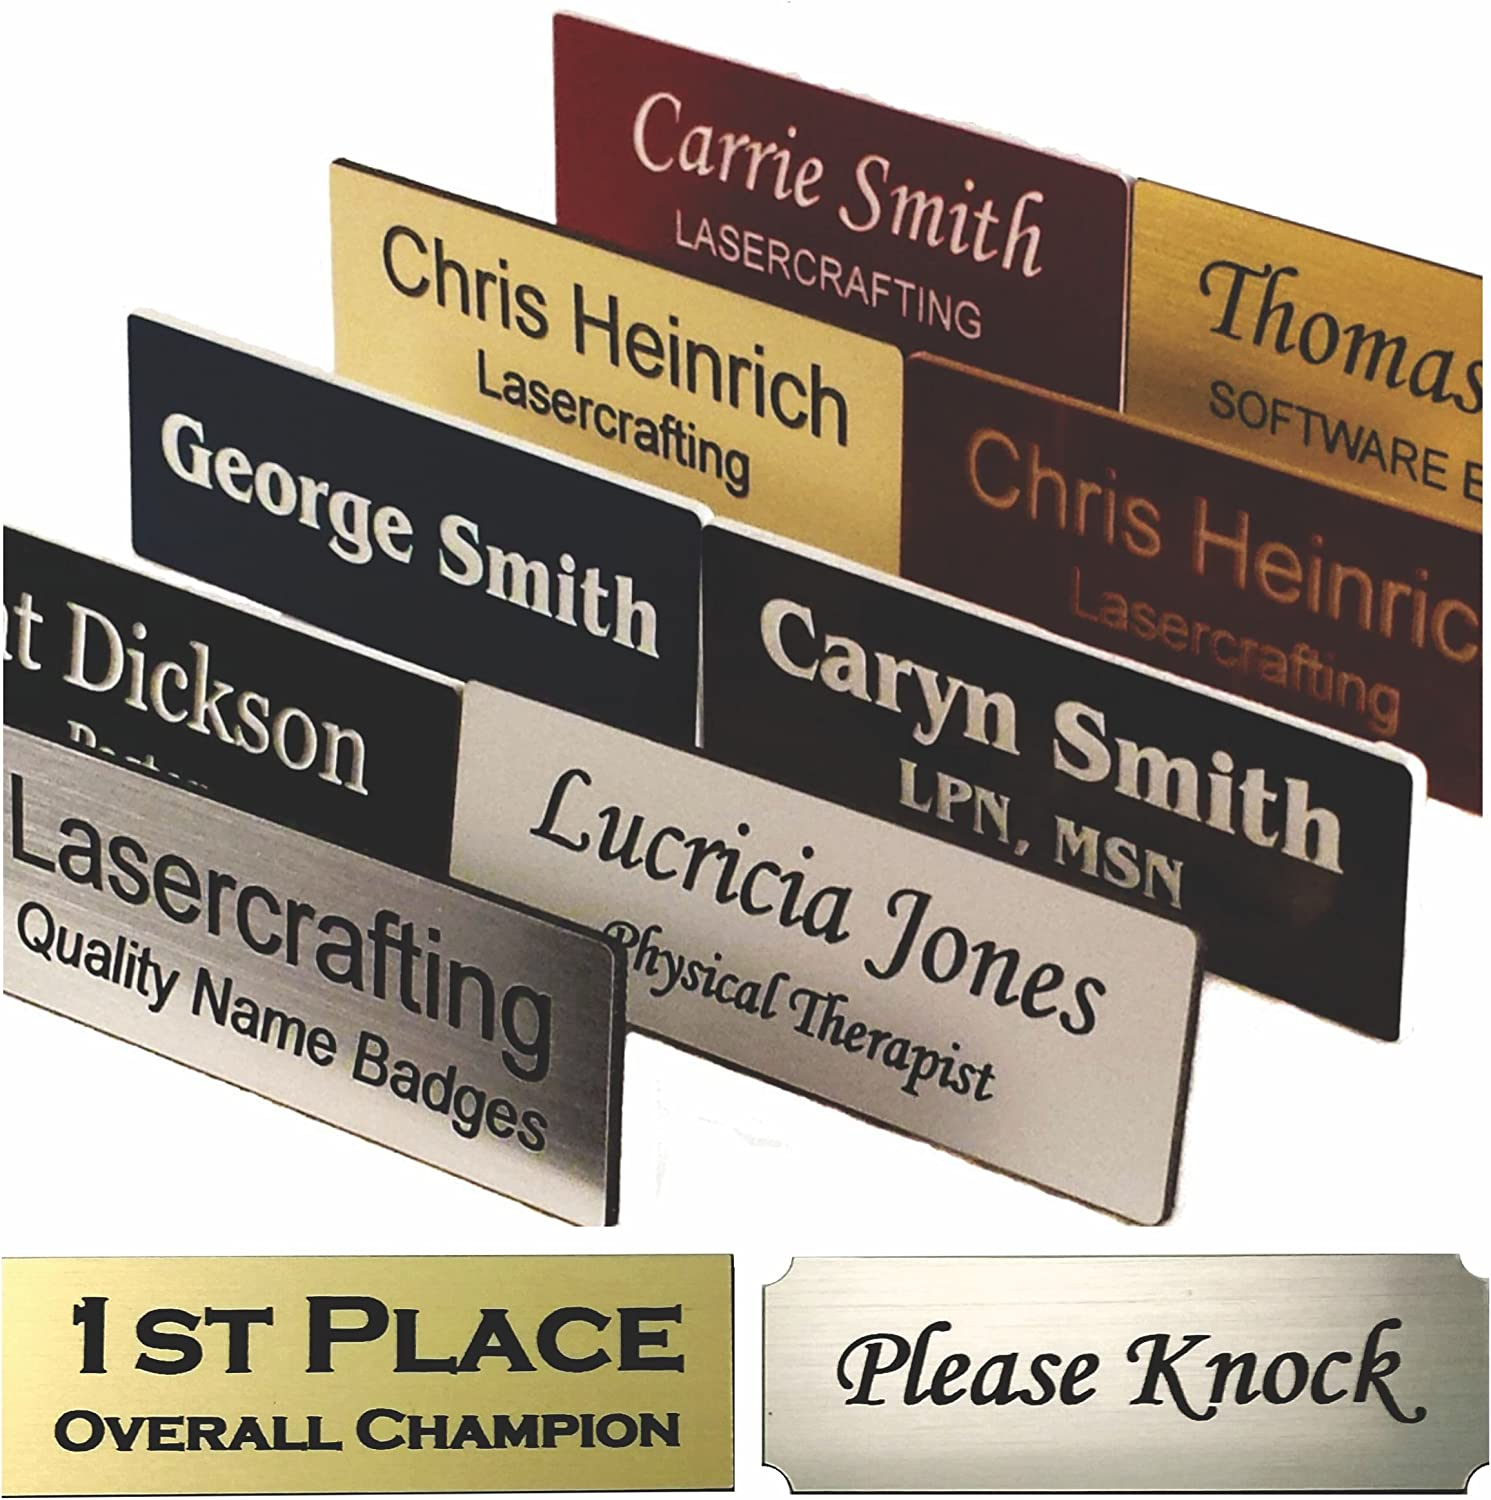 Name Badge or Trophy/Picture Label, Engraved - Choose Magnet, pin, Tape or Screws - Size Options